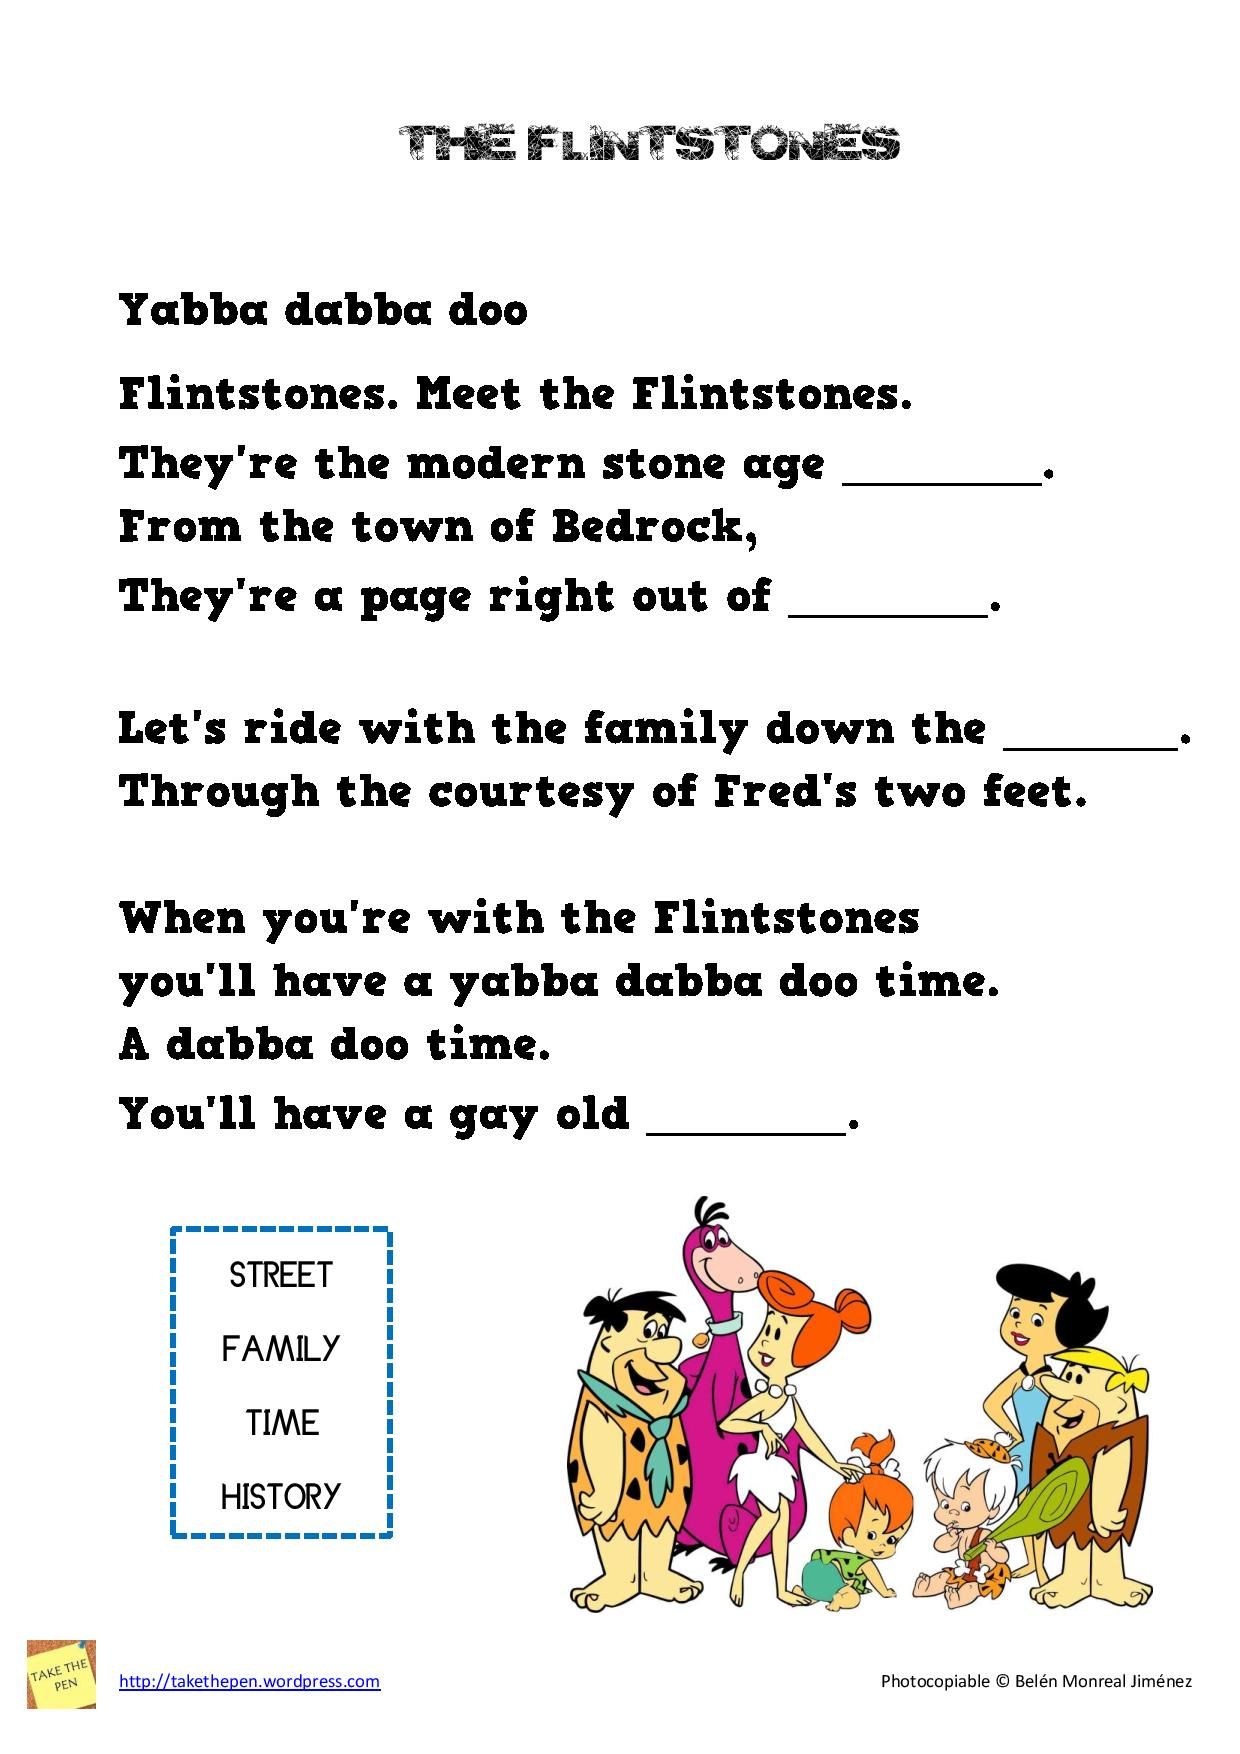 The Flintstones song